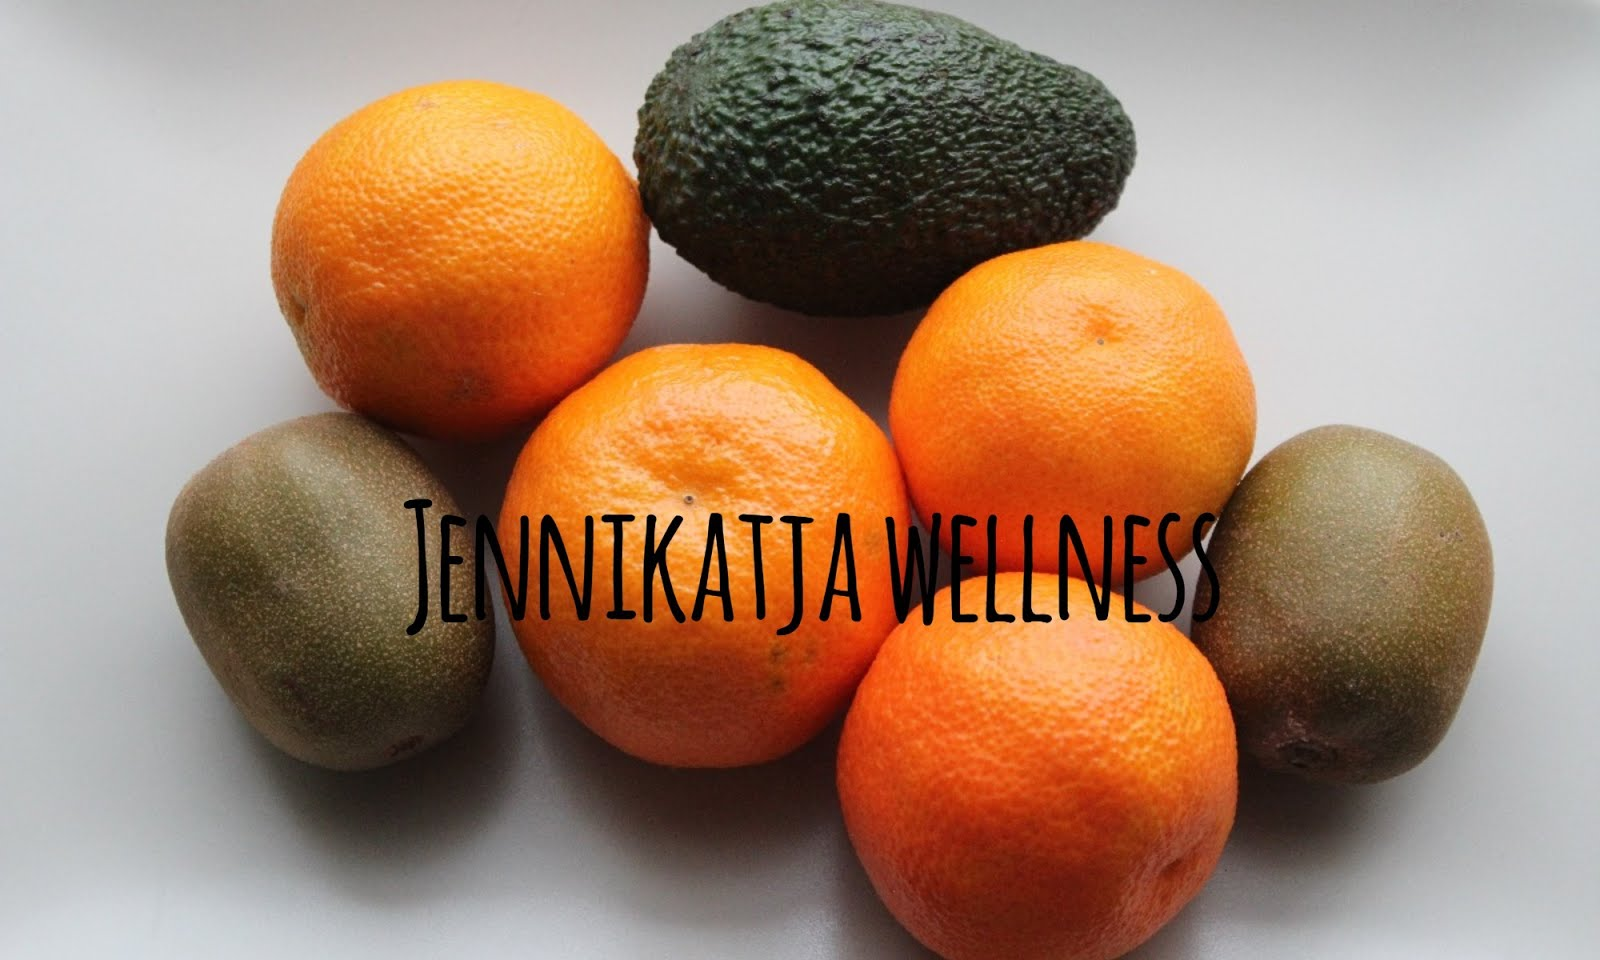 Jennikatja wellness